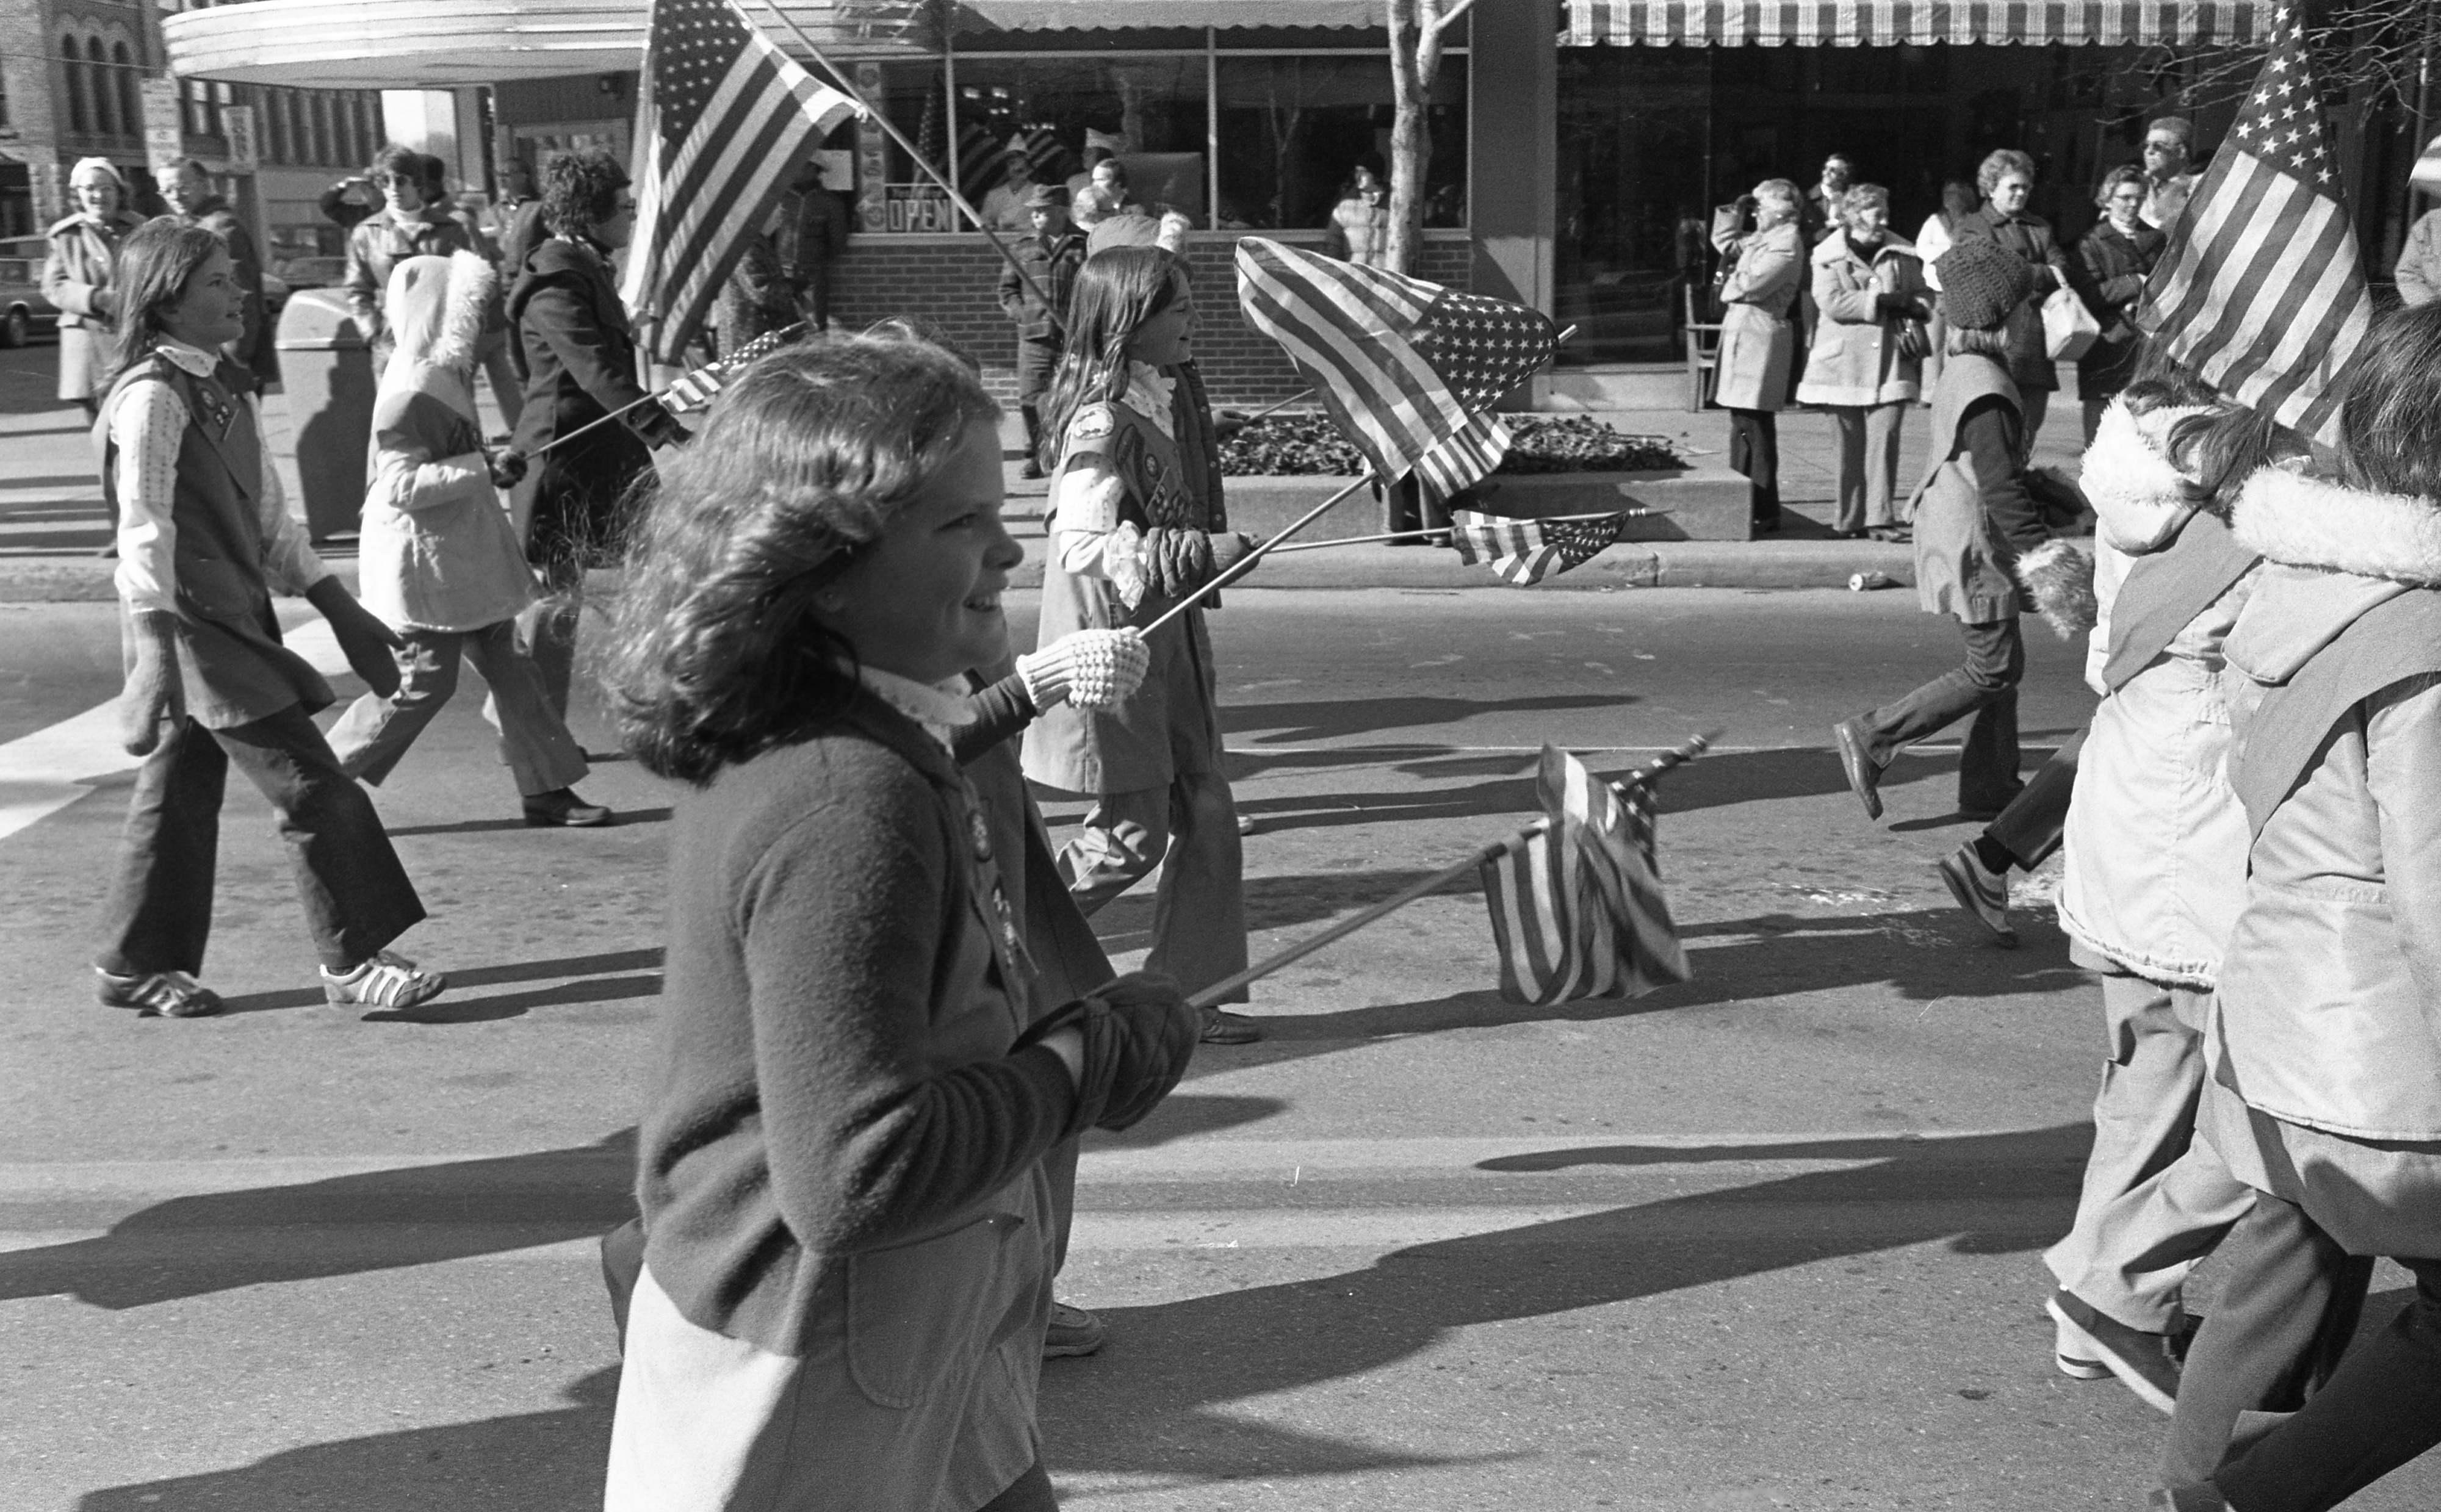 Girl Scouts March Down Main Street In The Ann Arbor Veterans Day Parade - November 11, 1976 image